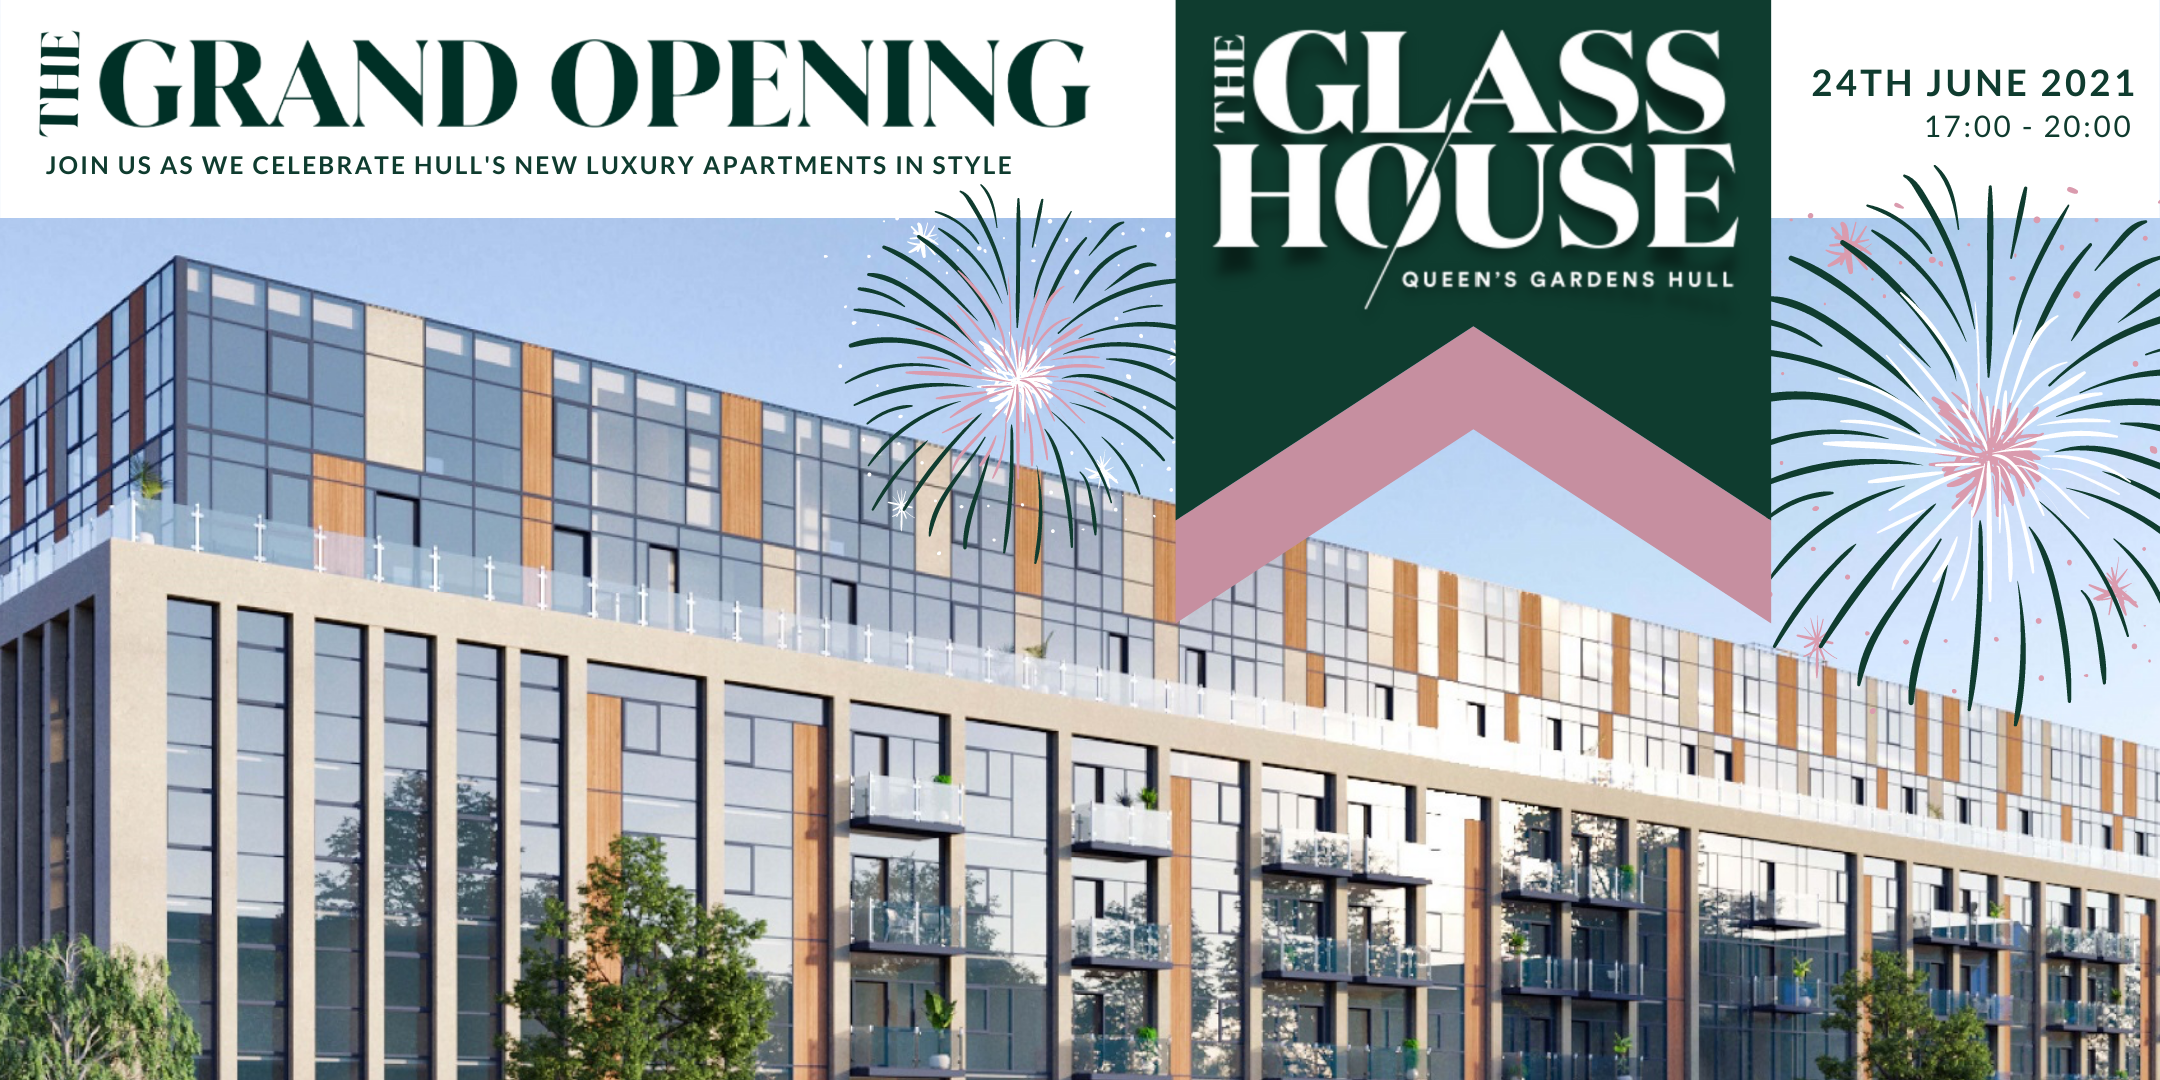 The Grand Opening at The Glass House Apartments